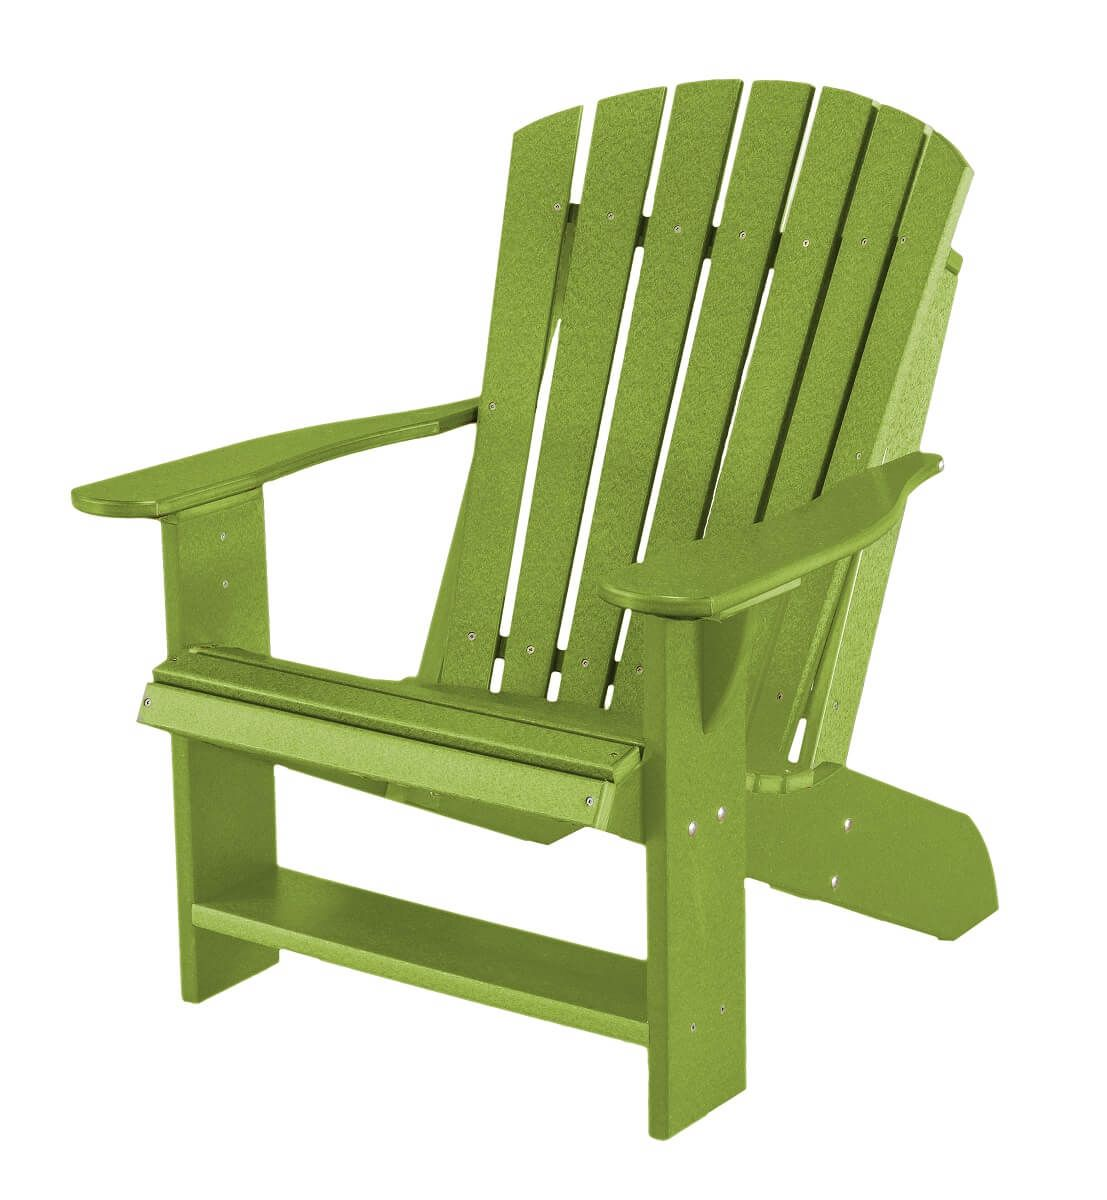 Lime Green Sidra Adirondack Chair